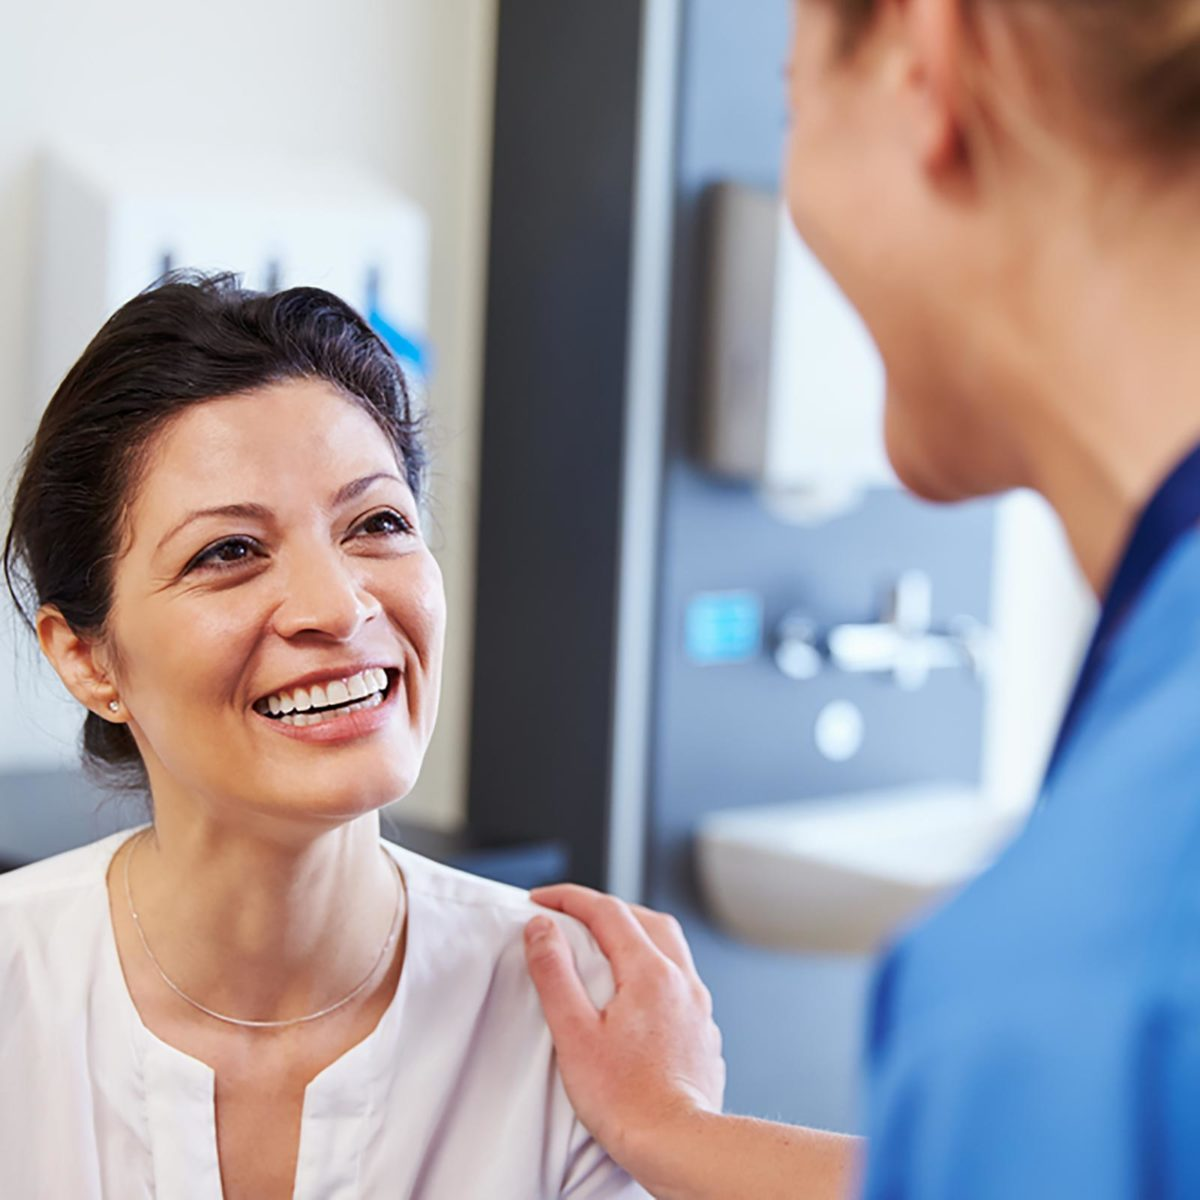 5b1949ab609 16 Medical Tips that Doctors and Nurses Wish You Knew | Reader's Digest